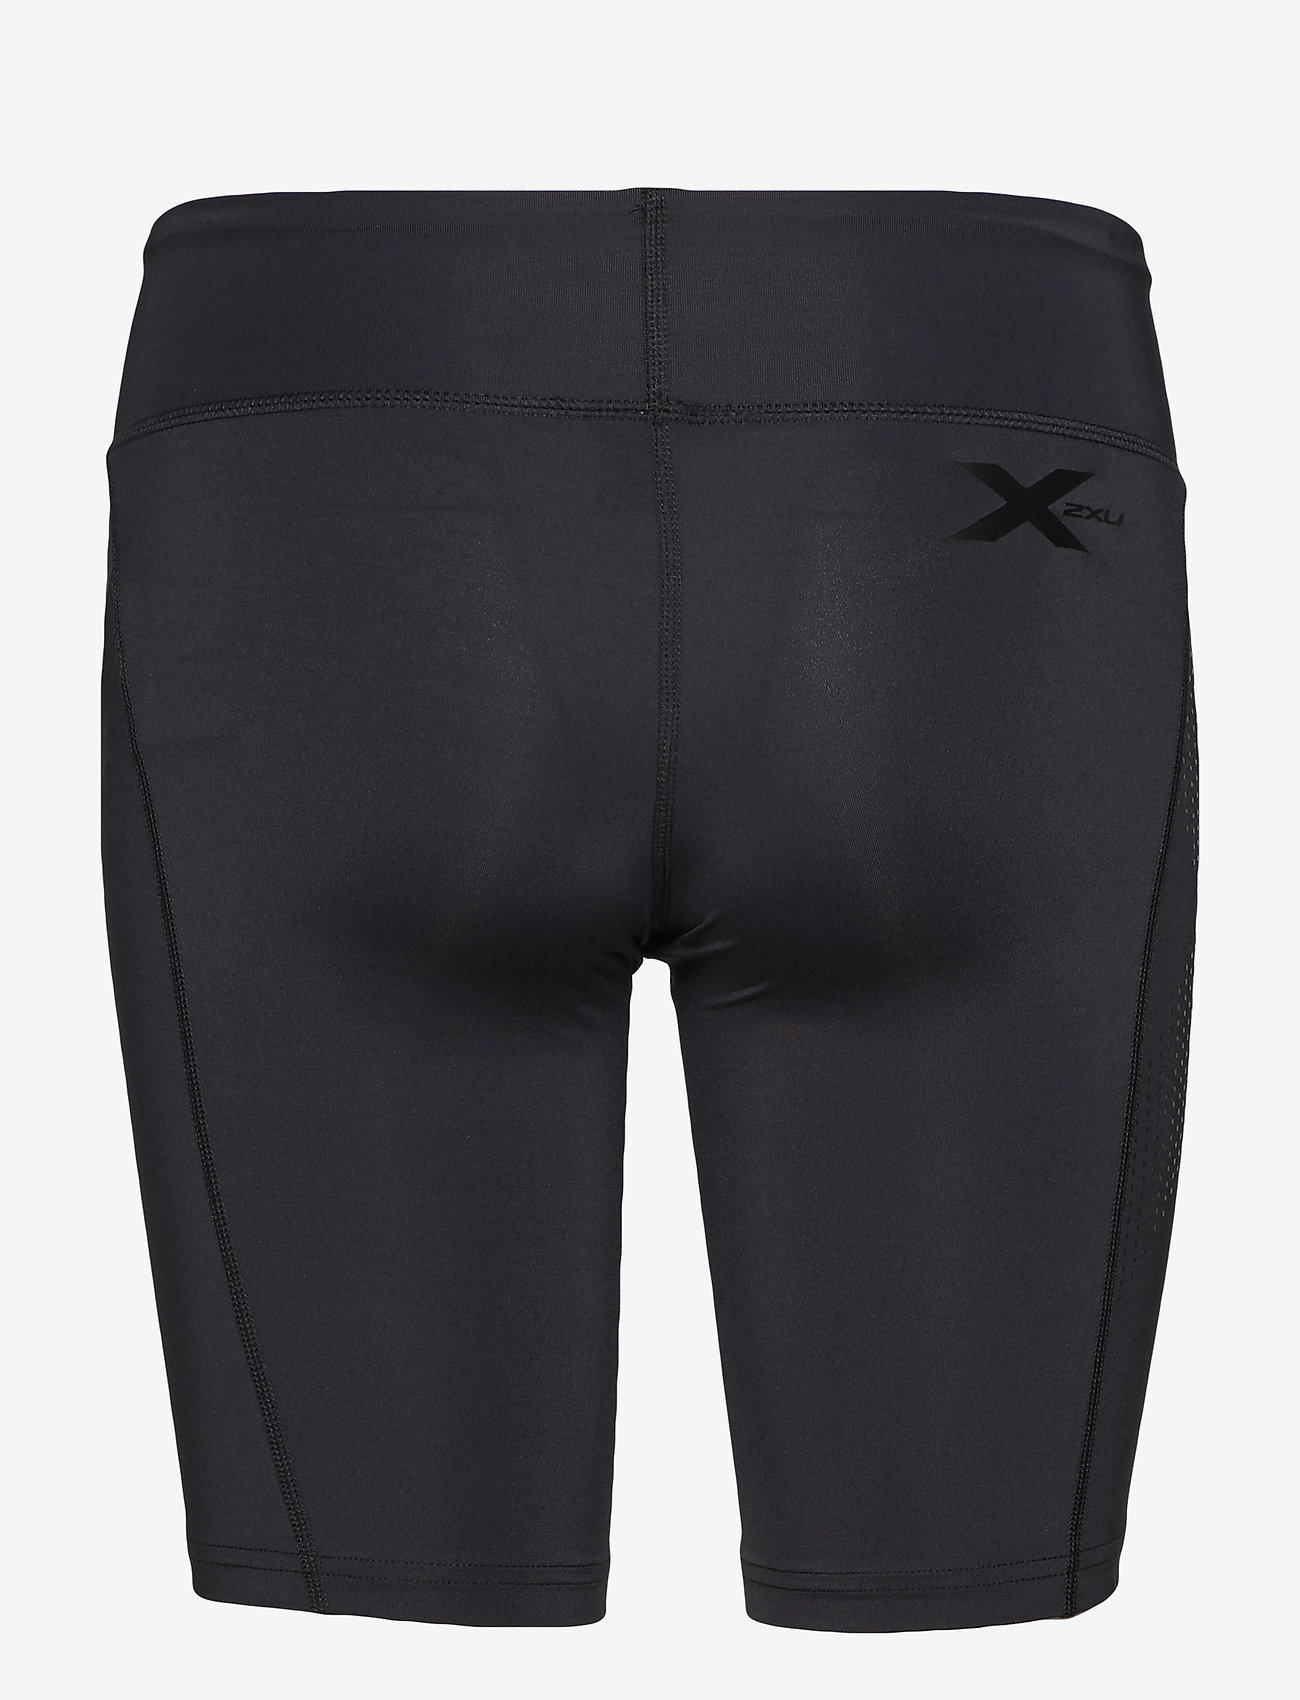 2XU - MOTION MID-RISE COMPRESSION S - träningsshorts - black/dotted black logo - 1